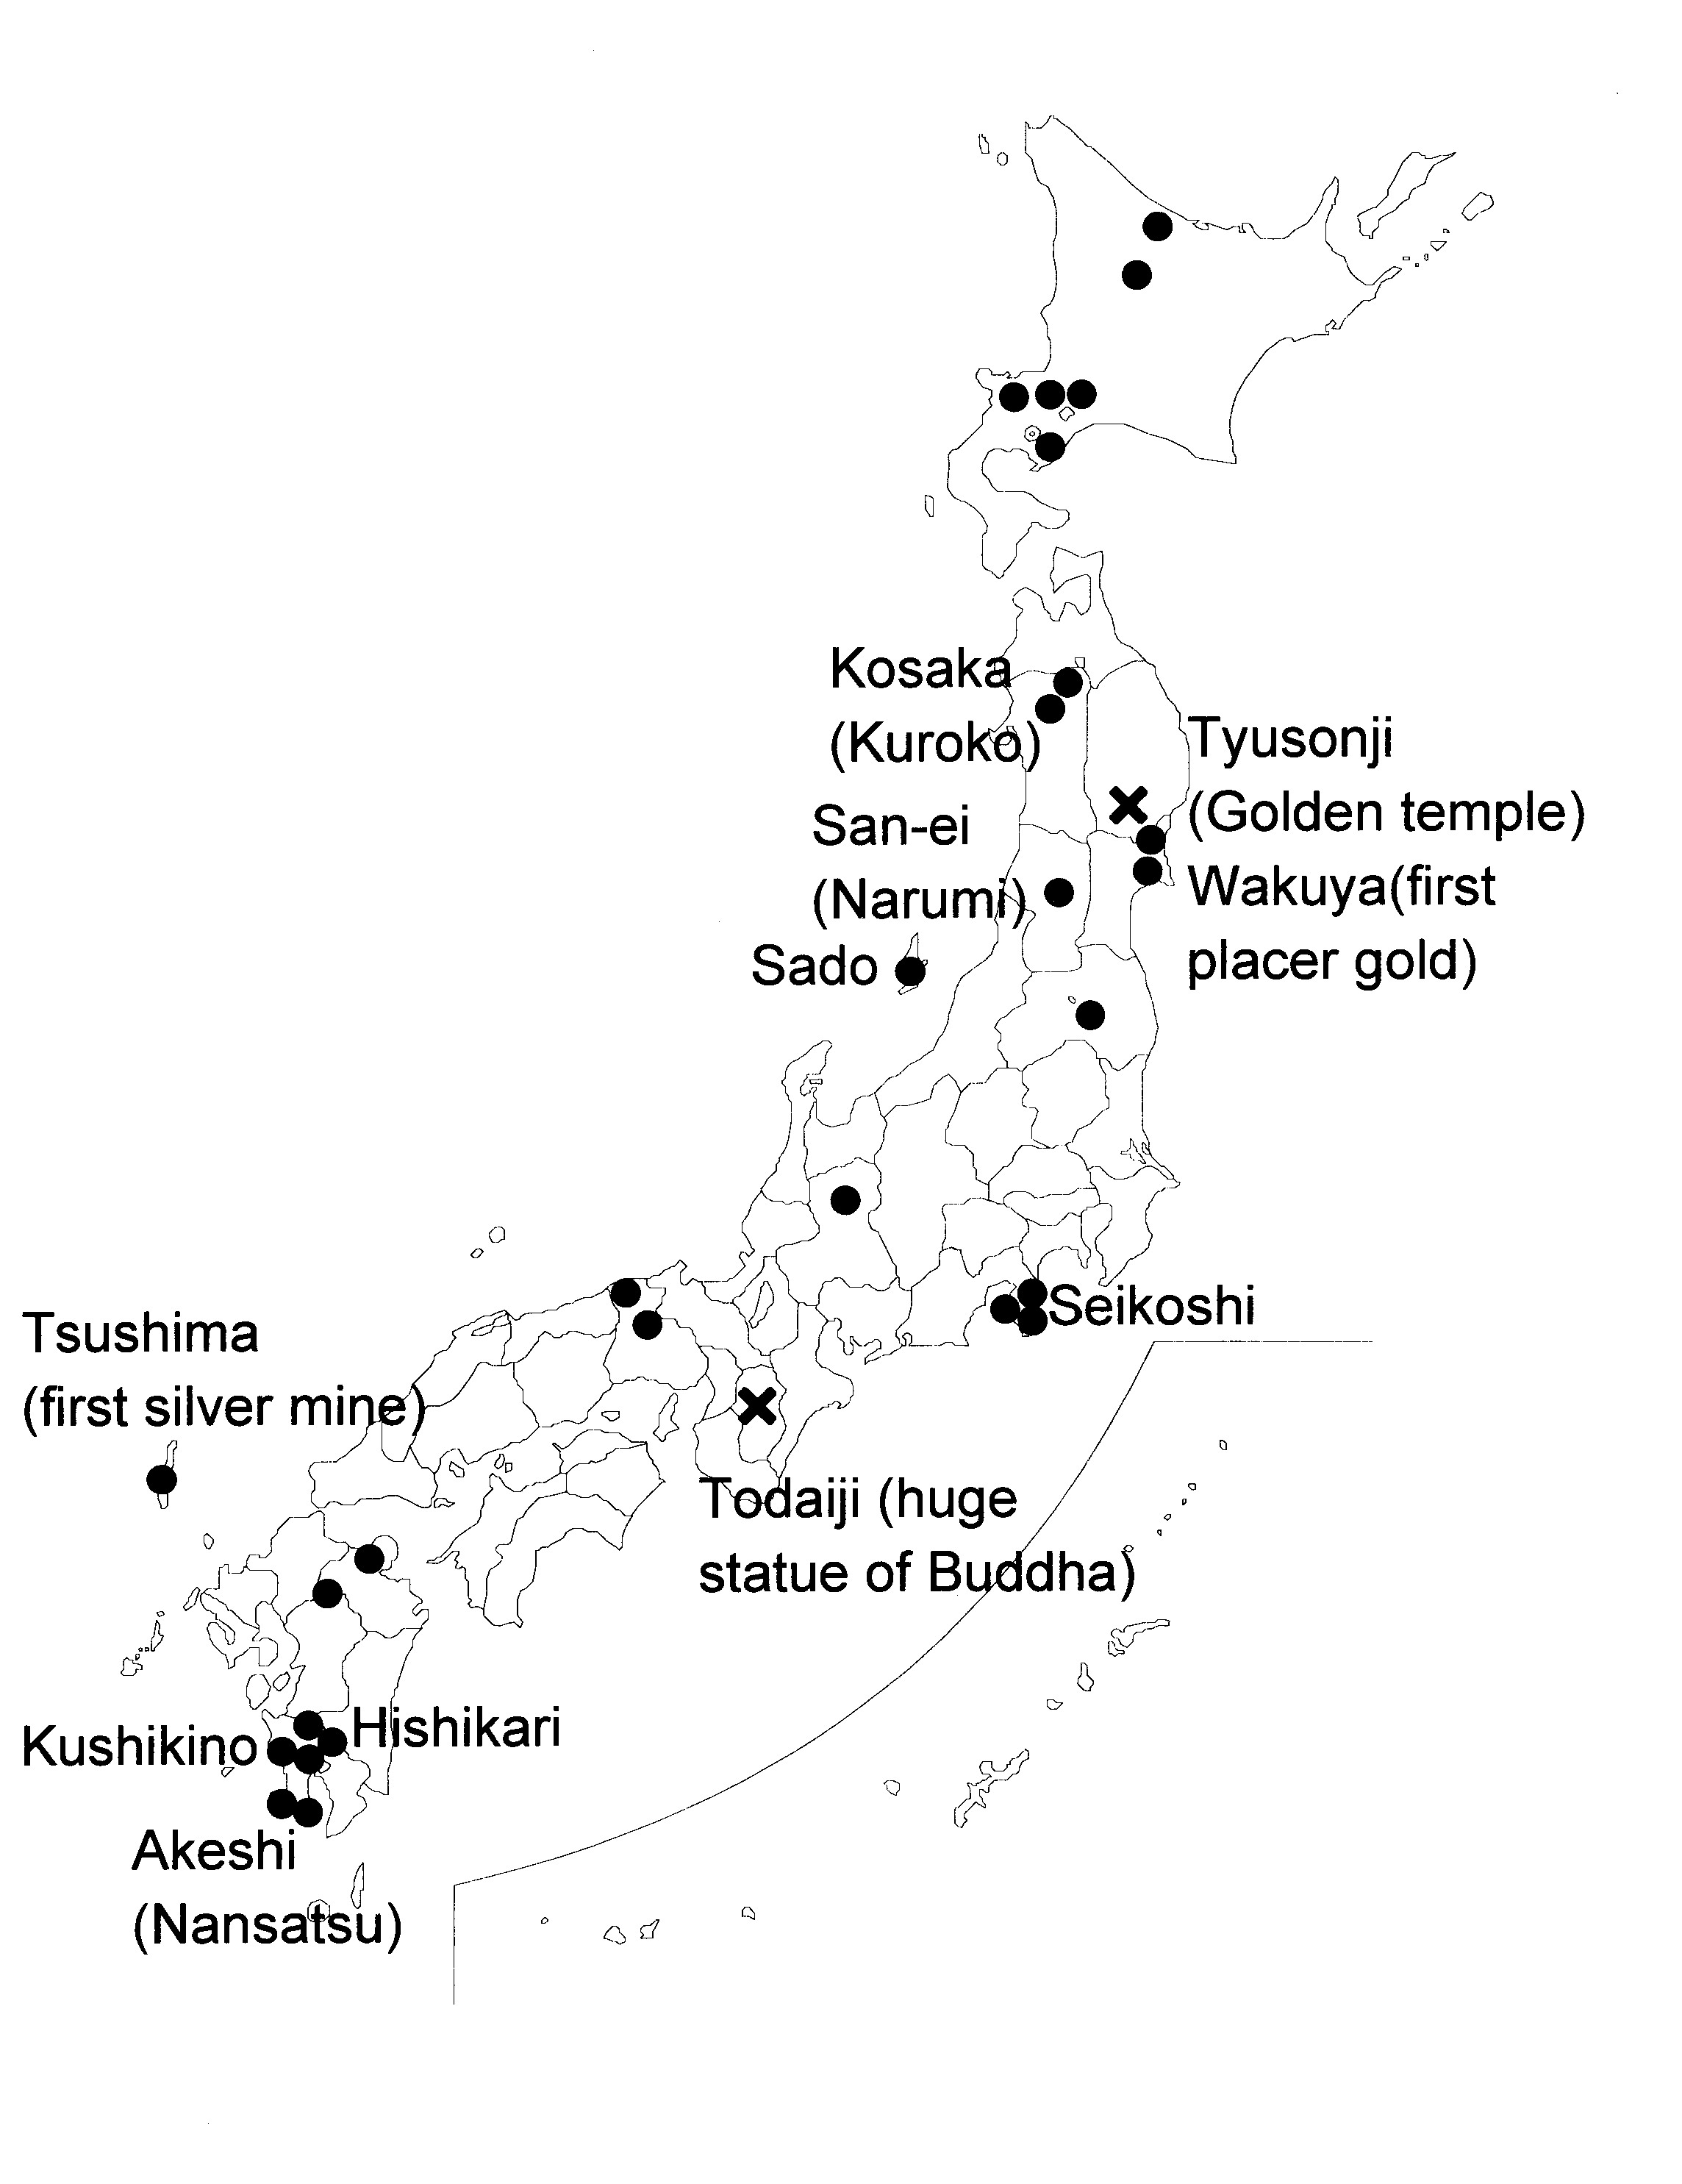 An Outline Of Japanese Gold And Silver Production Wat On Earth